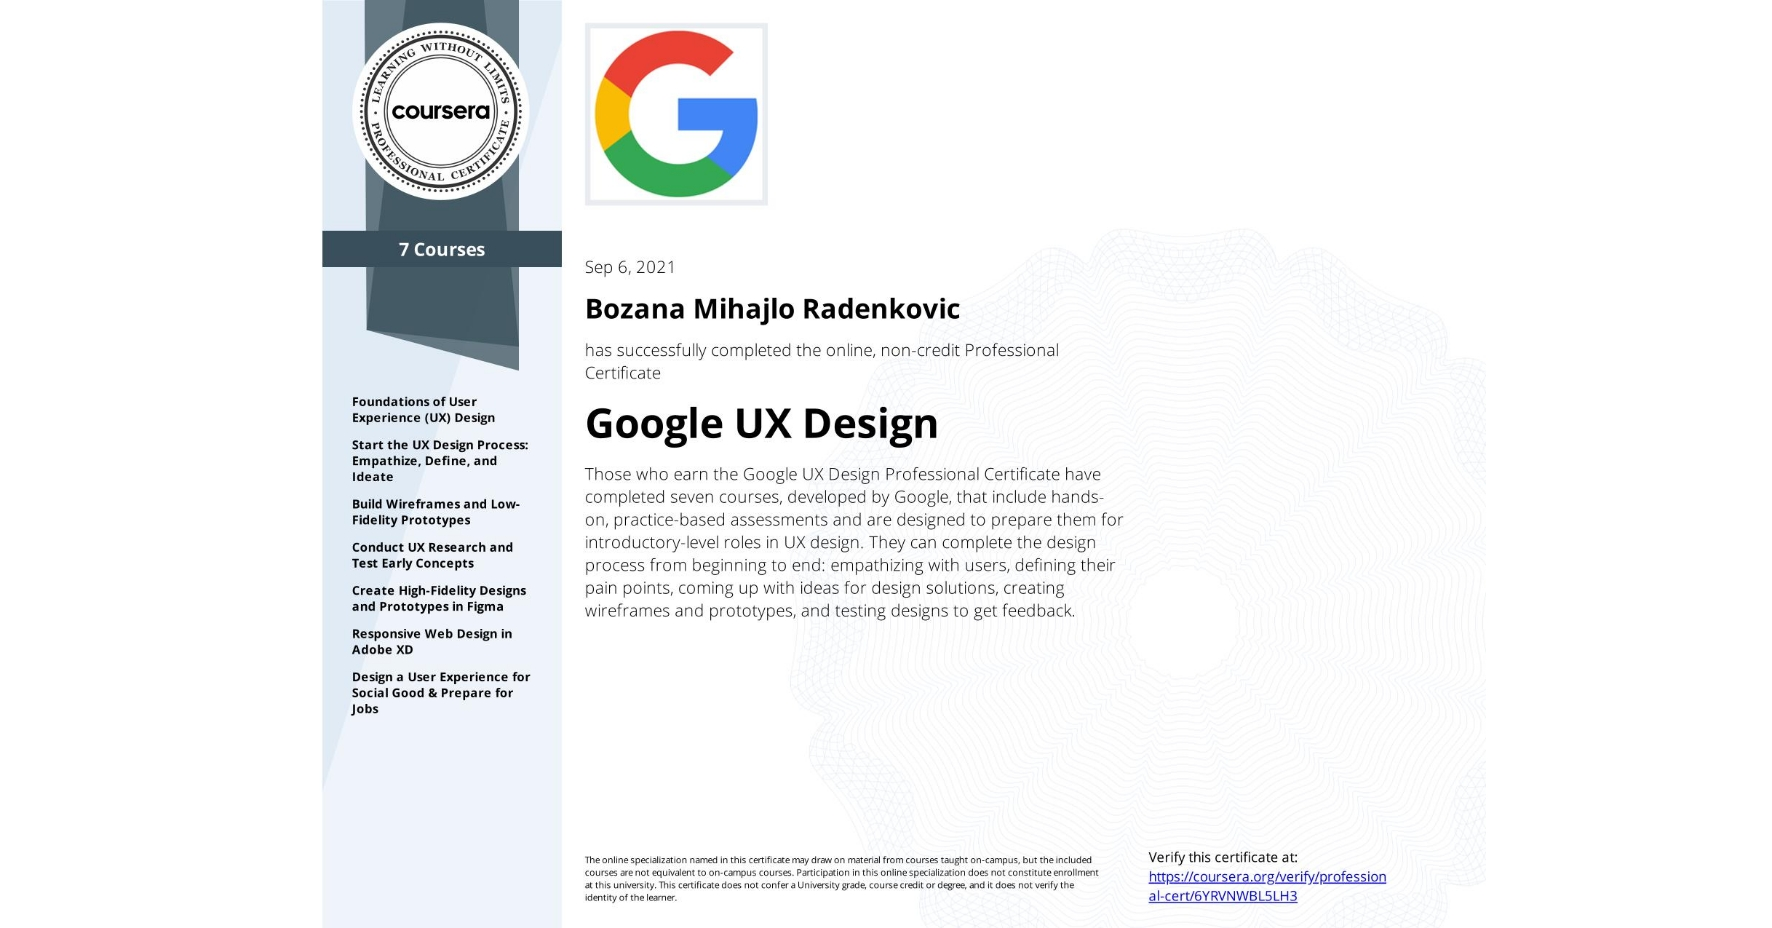 View certificate for Bozana Mihajlo Radenkovic, Google UX Design, offered through Coursera. Those who earn the Google UX Design Professional Certificate have completed seven courses, developed by Google, that include hands-on, practice-based assessments and are designed to prepare them for introductory-level roles in UX design. They can complete the design process from beginning to end: empathizing with users, defining their pain points, coming up with ideas for design solutions, creating wireframes and prototypes, and testing designs to get feedback.